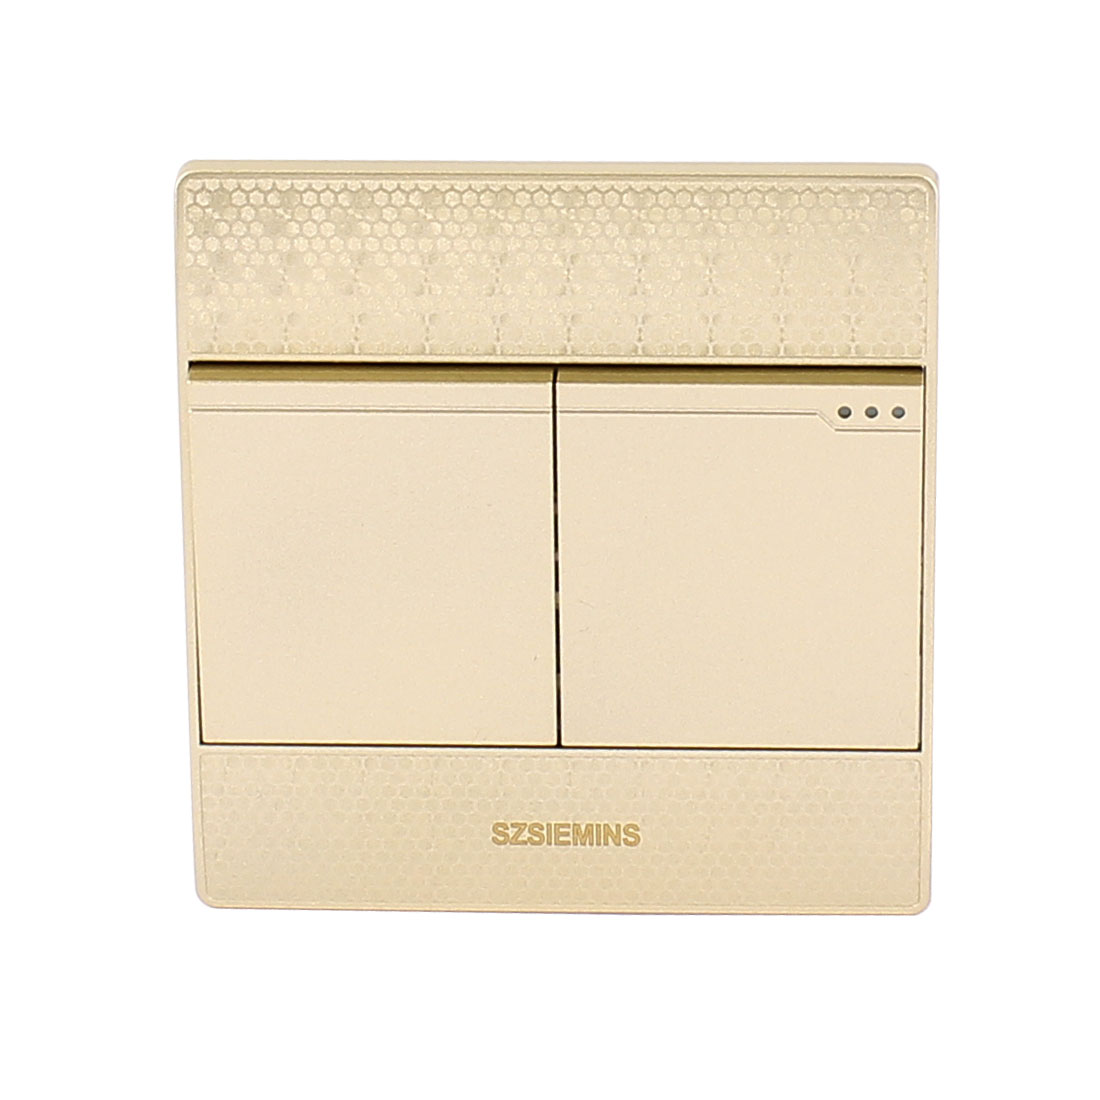 AC 250V 10A 2 Gang 1 Way On/Off 86 Type Press Button Wall Lamp Switch Champagne Gold